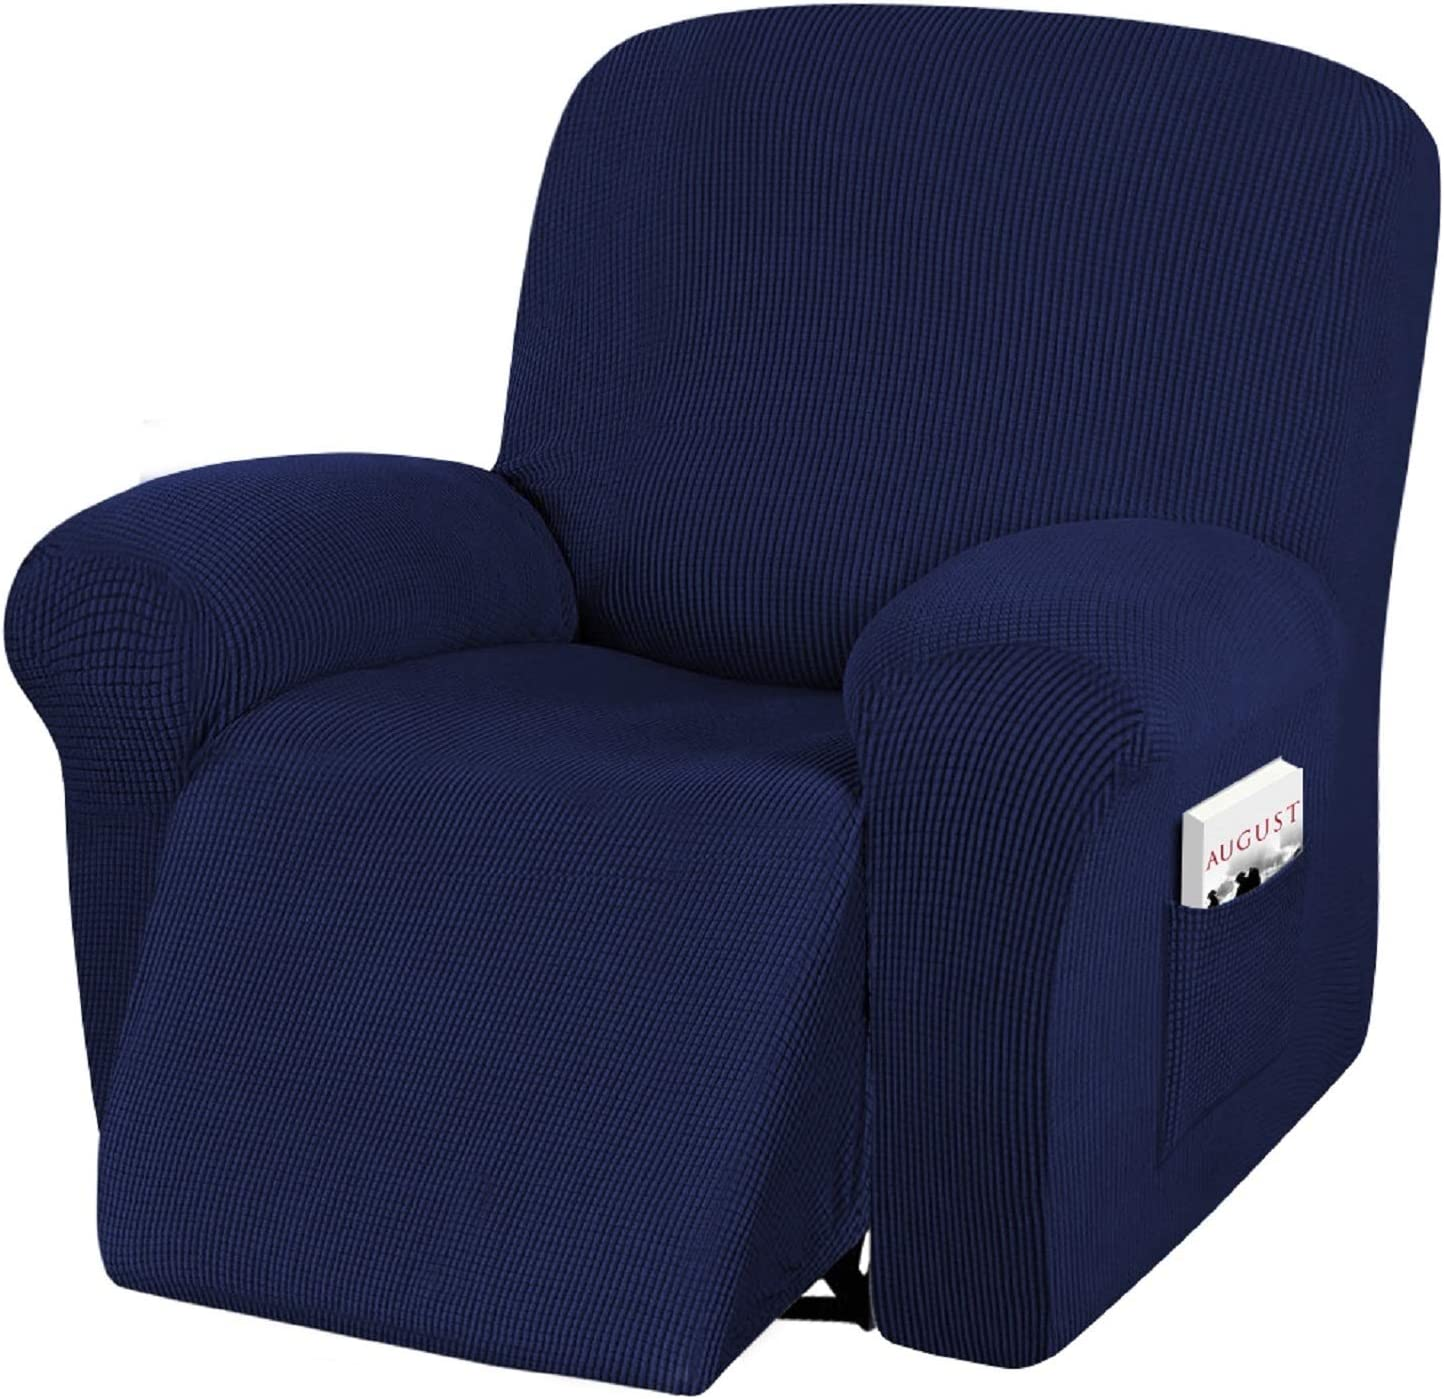 Recliner Sofa Slipcover, iCOVER Four Piece High Stretchy Reclining Chair Cover, Machine Washable Spandex Jacquard Fabric, Bottom Elastic Easy to Install, Non-Slip Furniture Protector, Navy